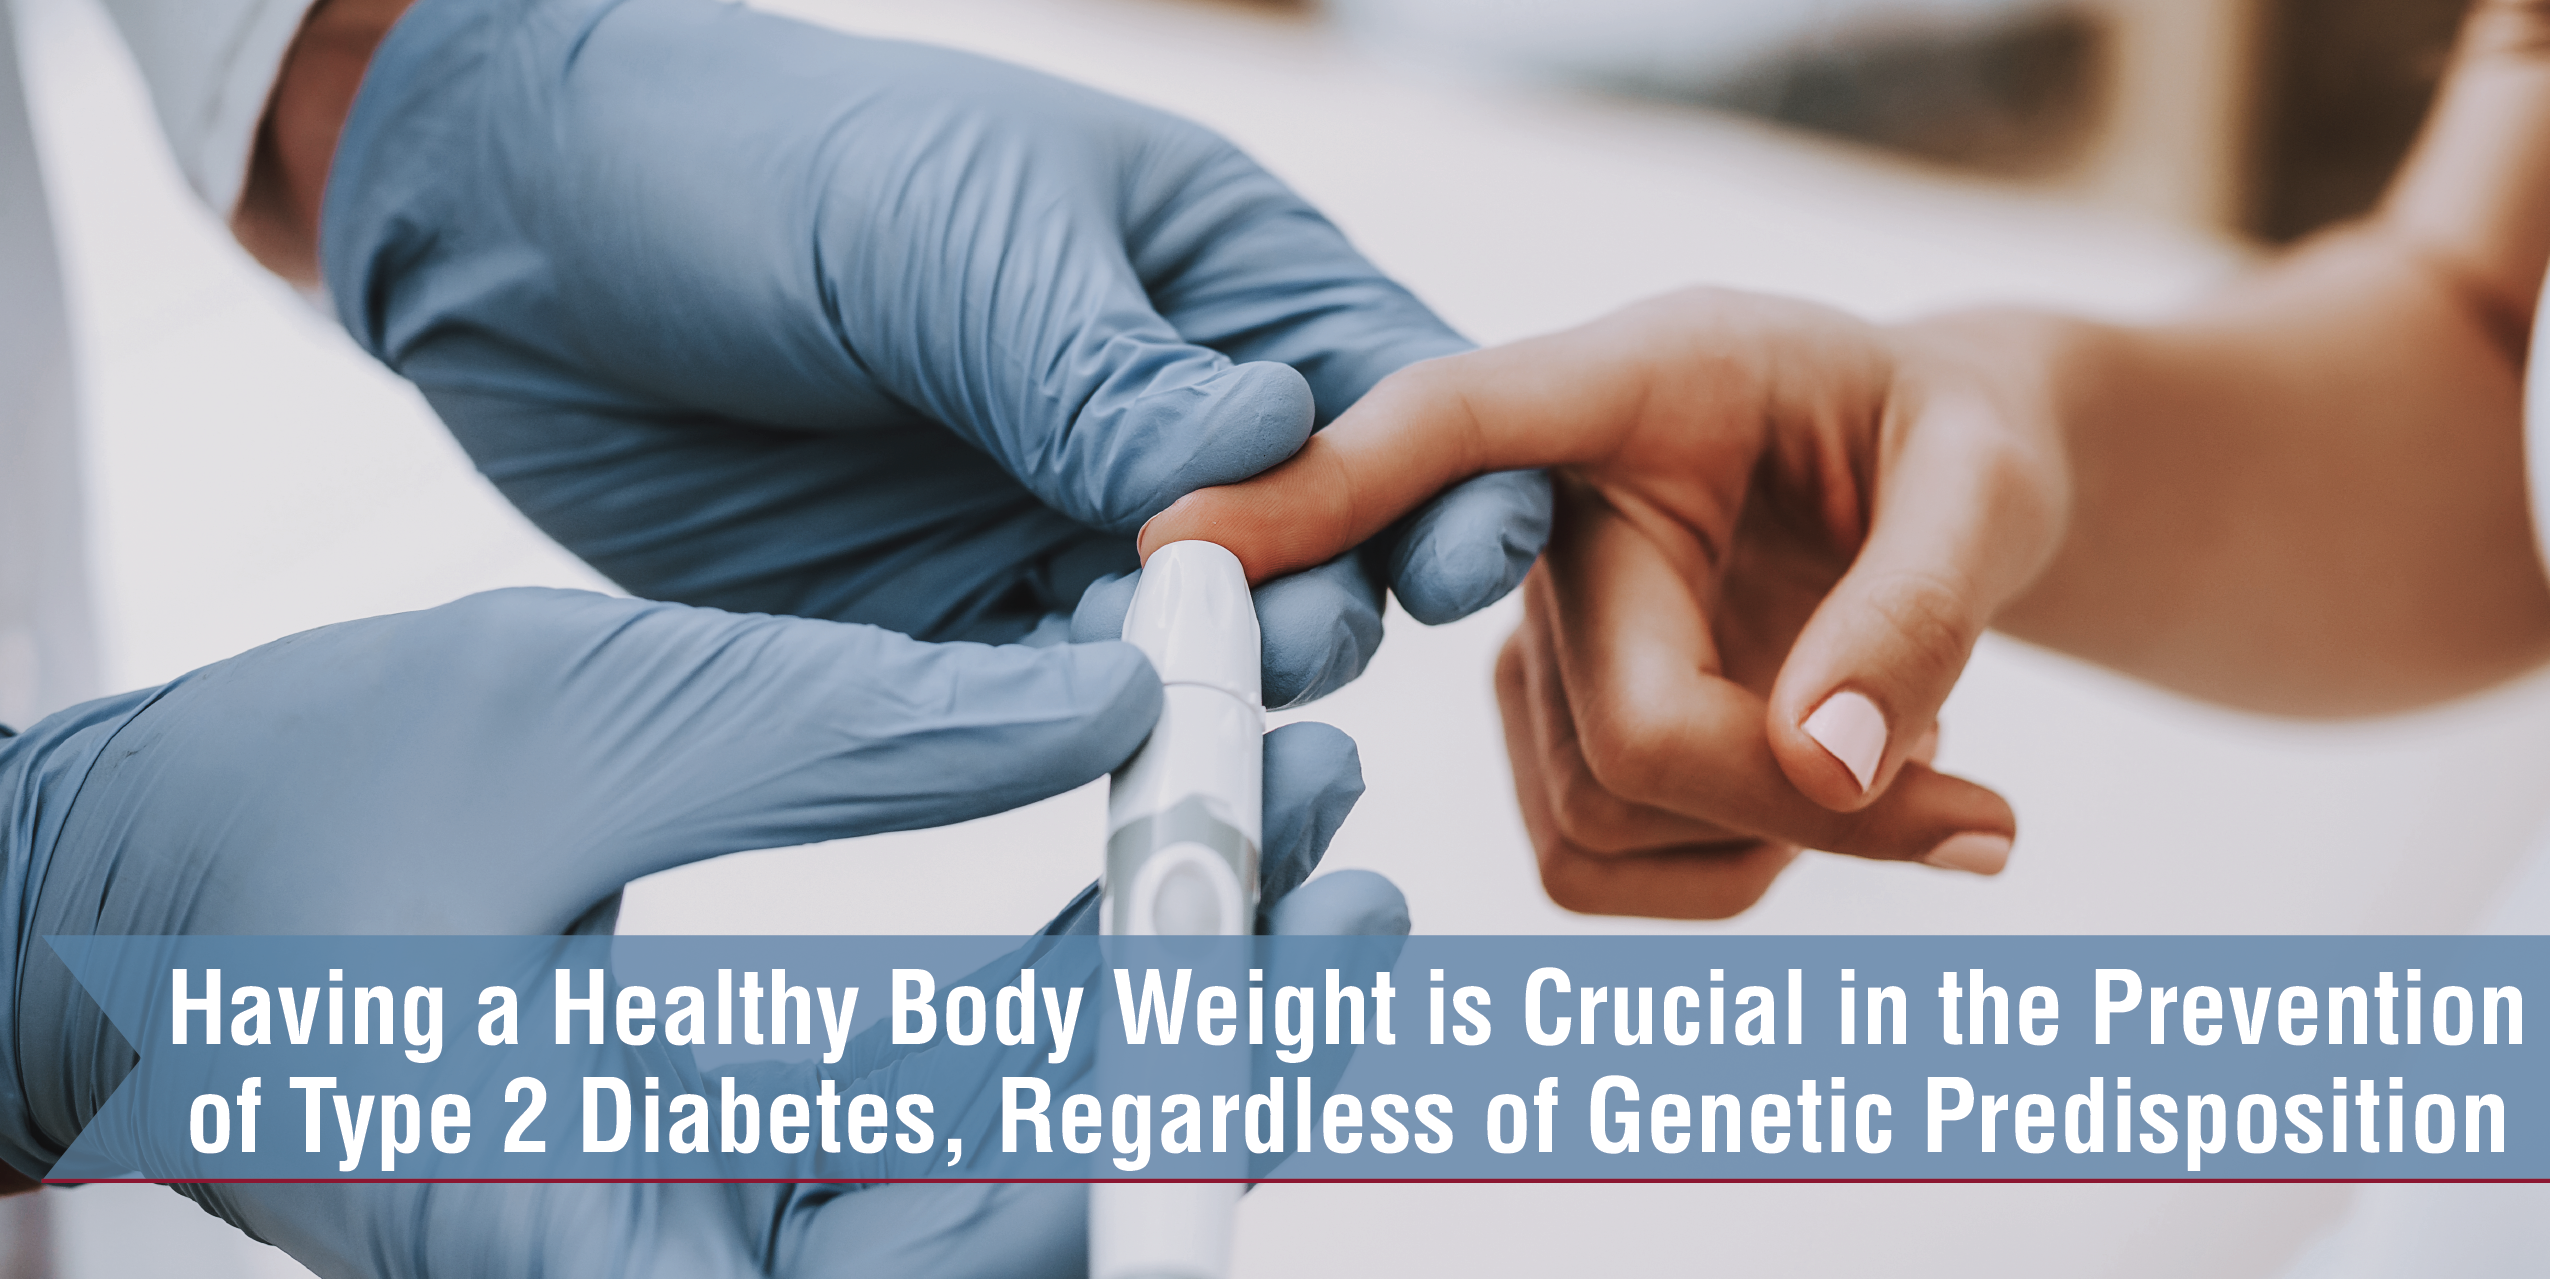 Healthy Body Weight Is Crucial In The Prevention Of Type 2 Diabetes, Regardless Of Genetic Predisposition